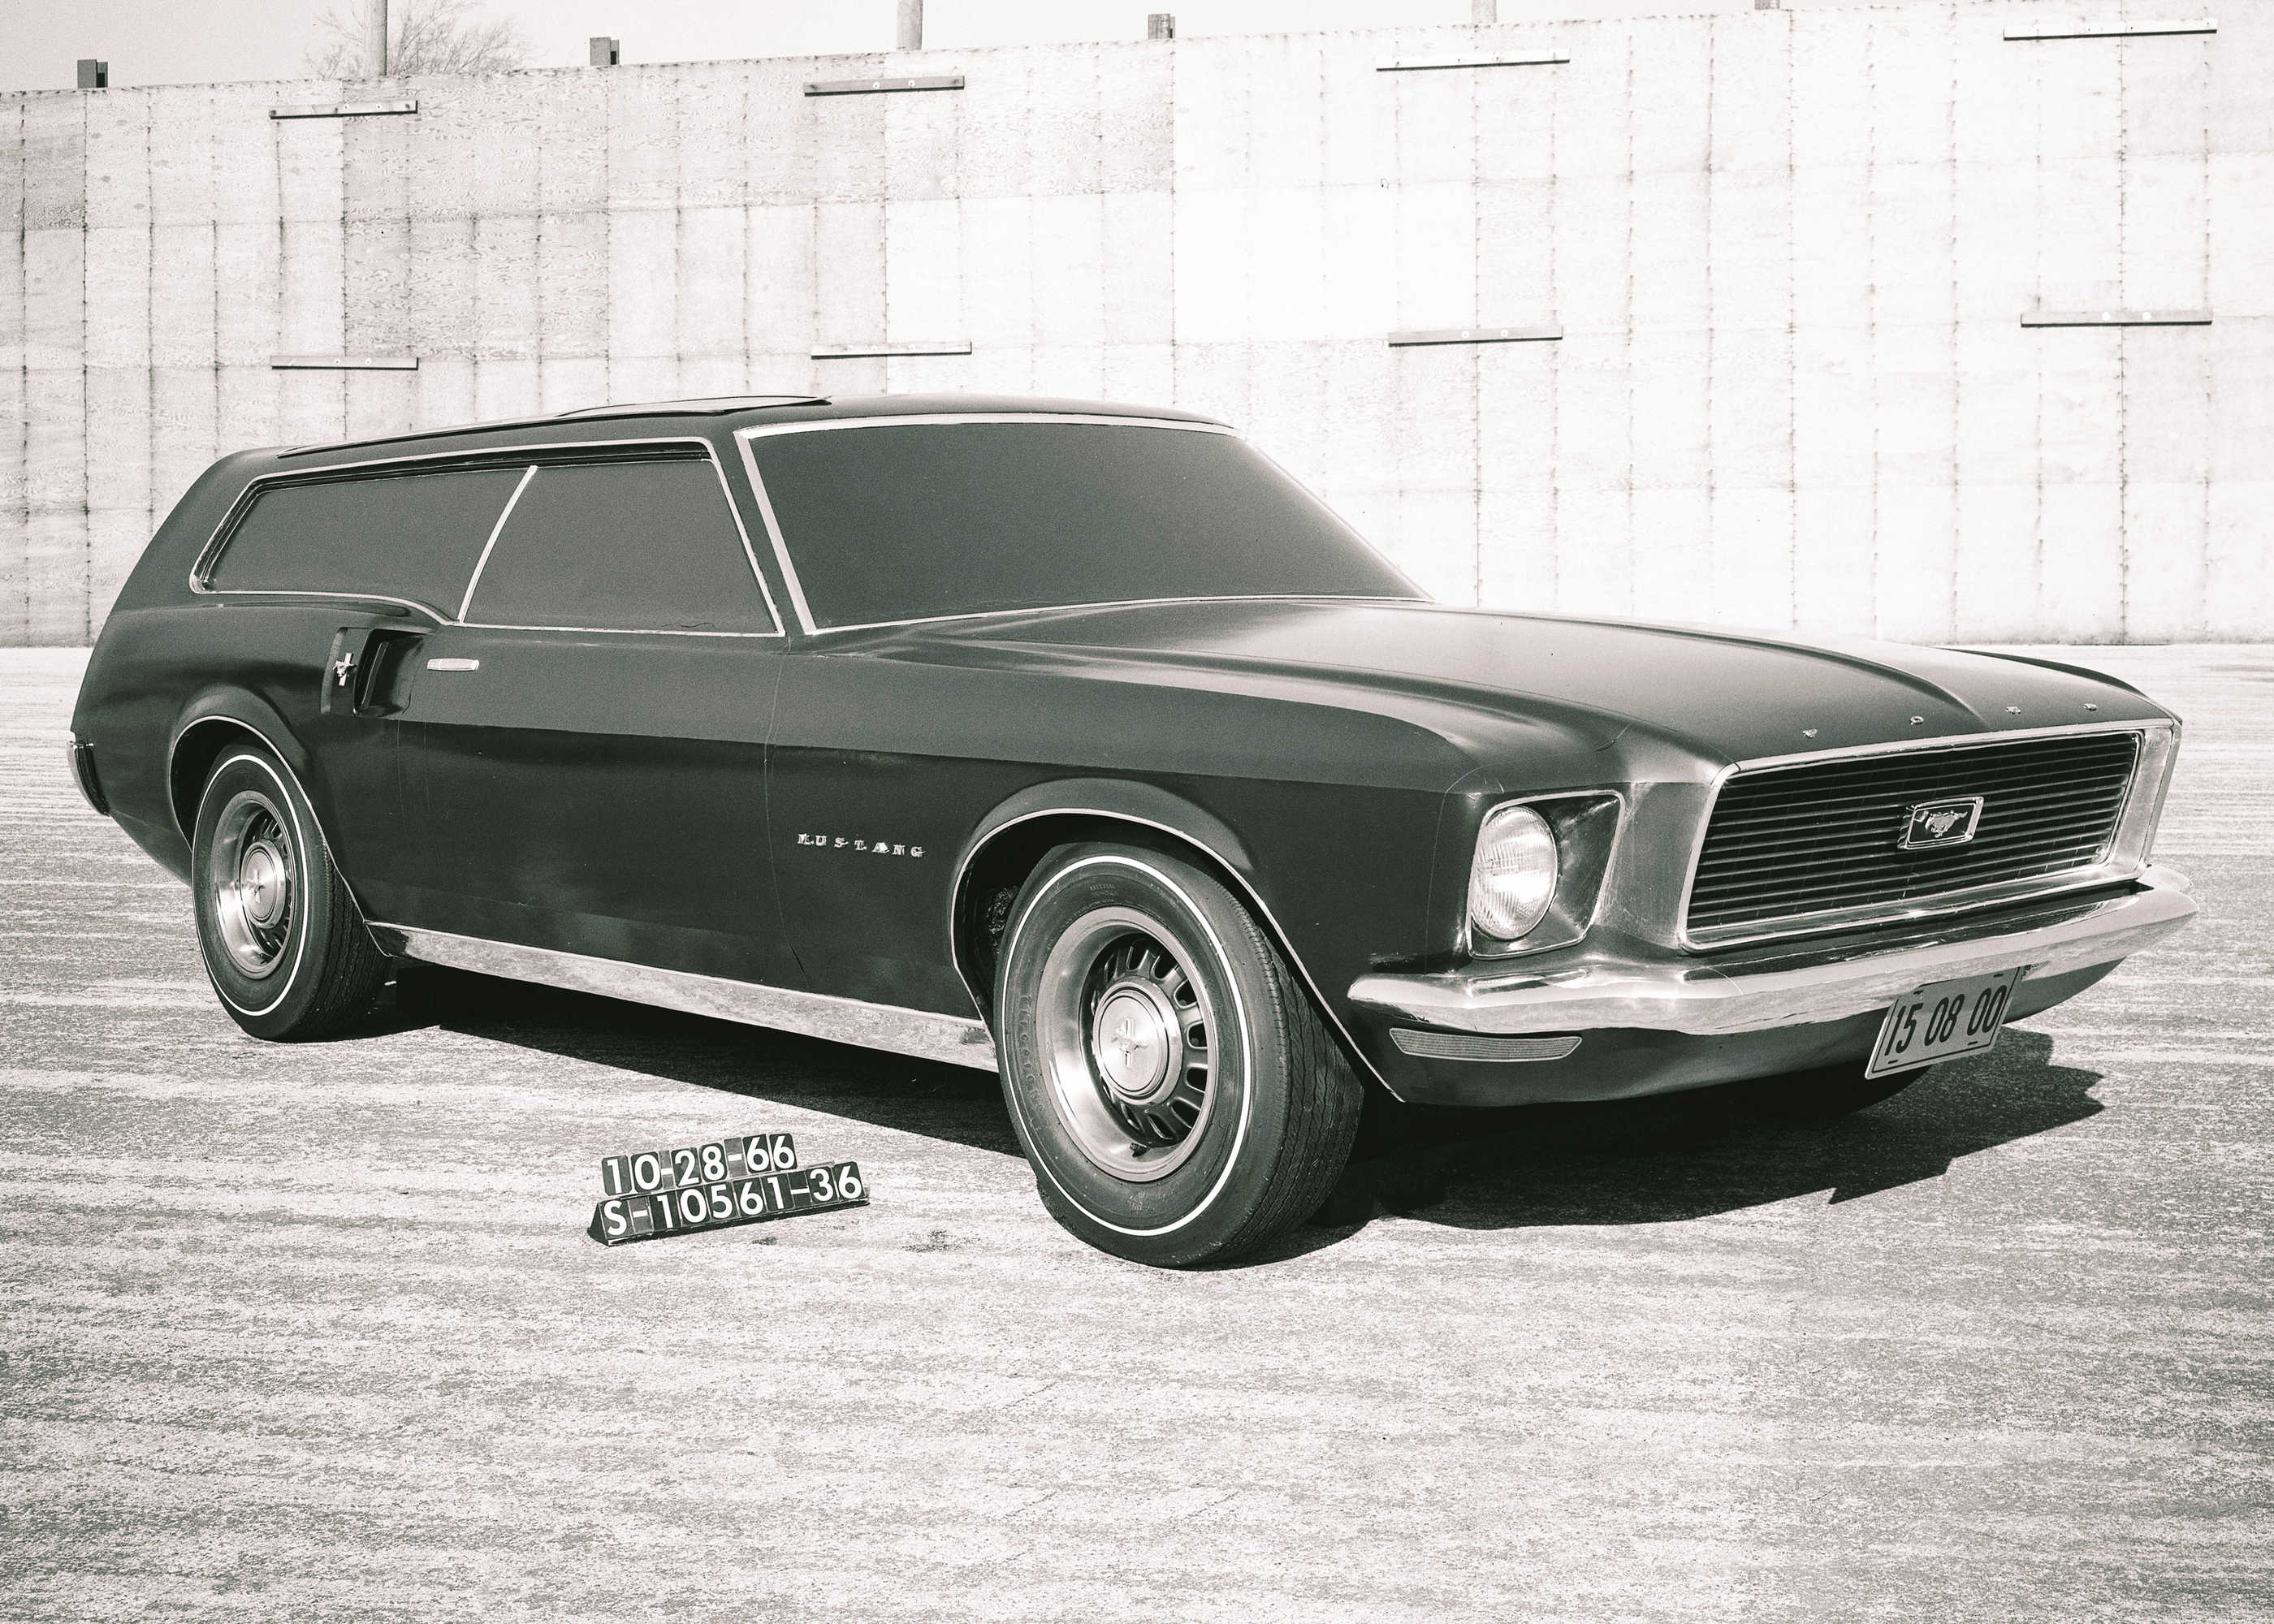 1966р. Mustang Station Wagon, фото Ford Mustang